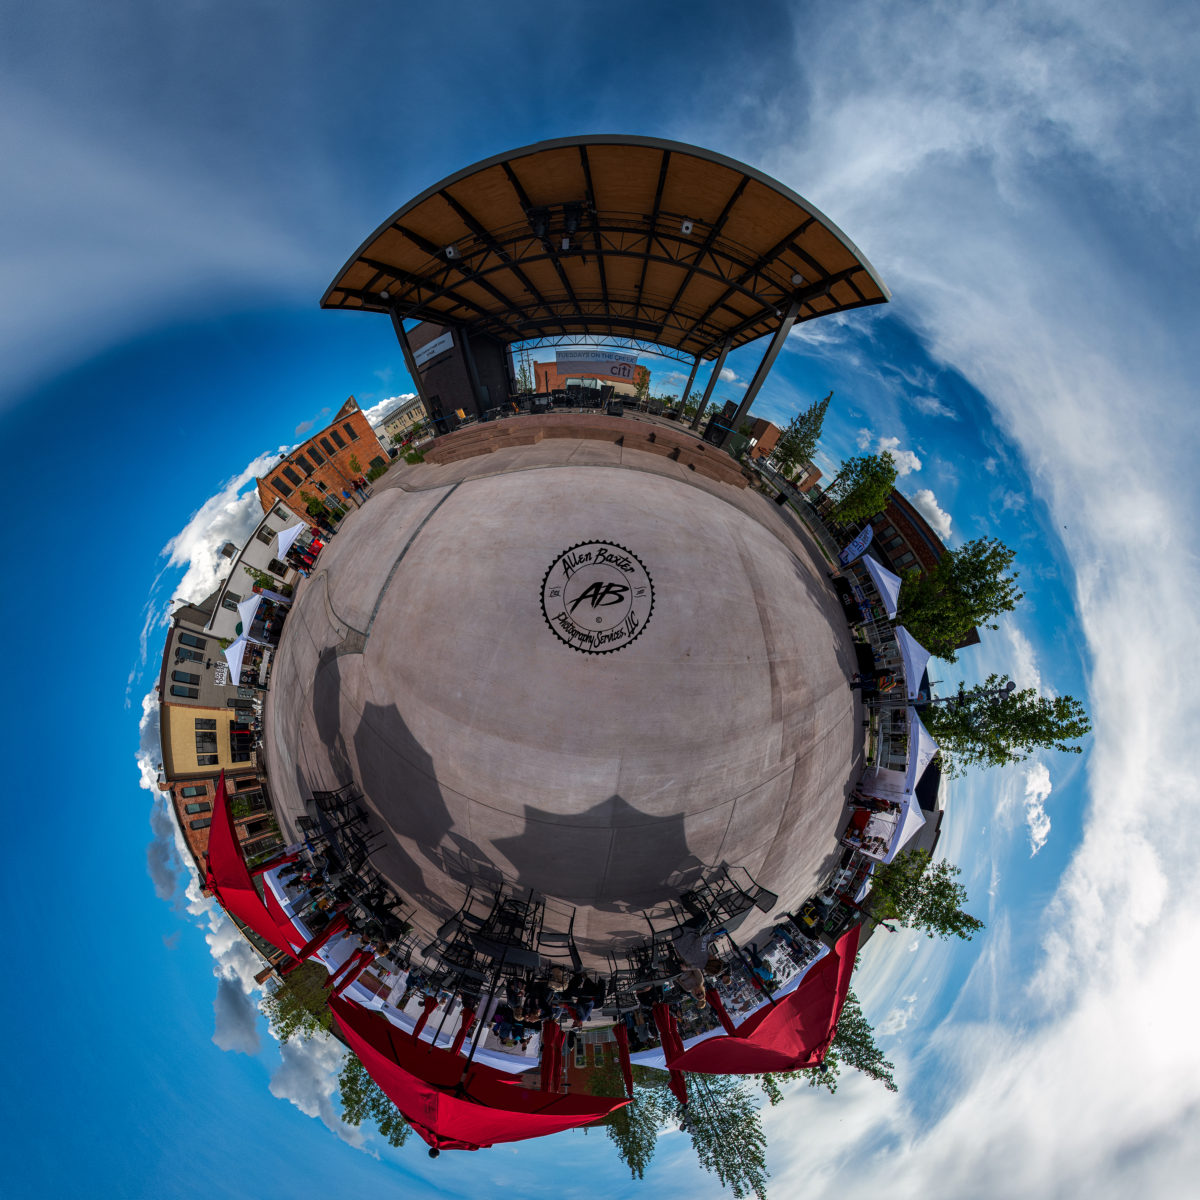 Tour the Plaza - Click below to take a 360 degree tour of Indian Creek Plaza and Downtown Caldwell courtesy of AB Photography Services.